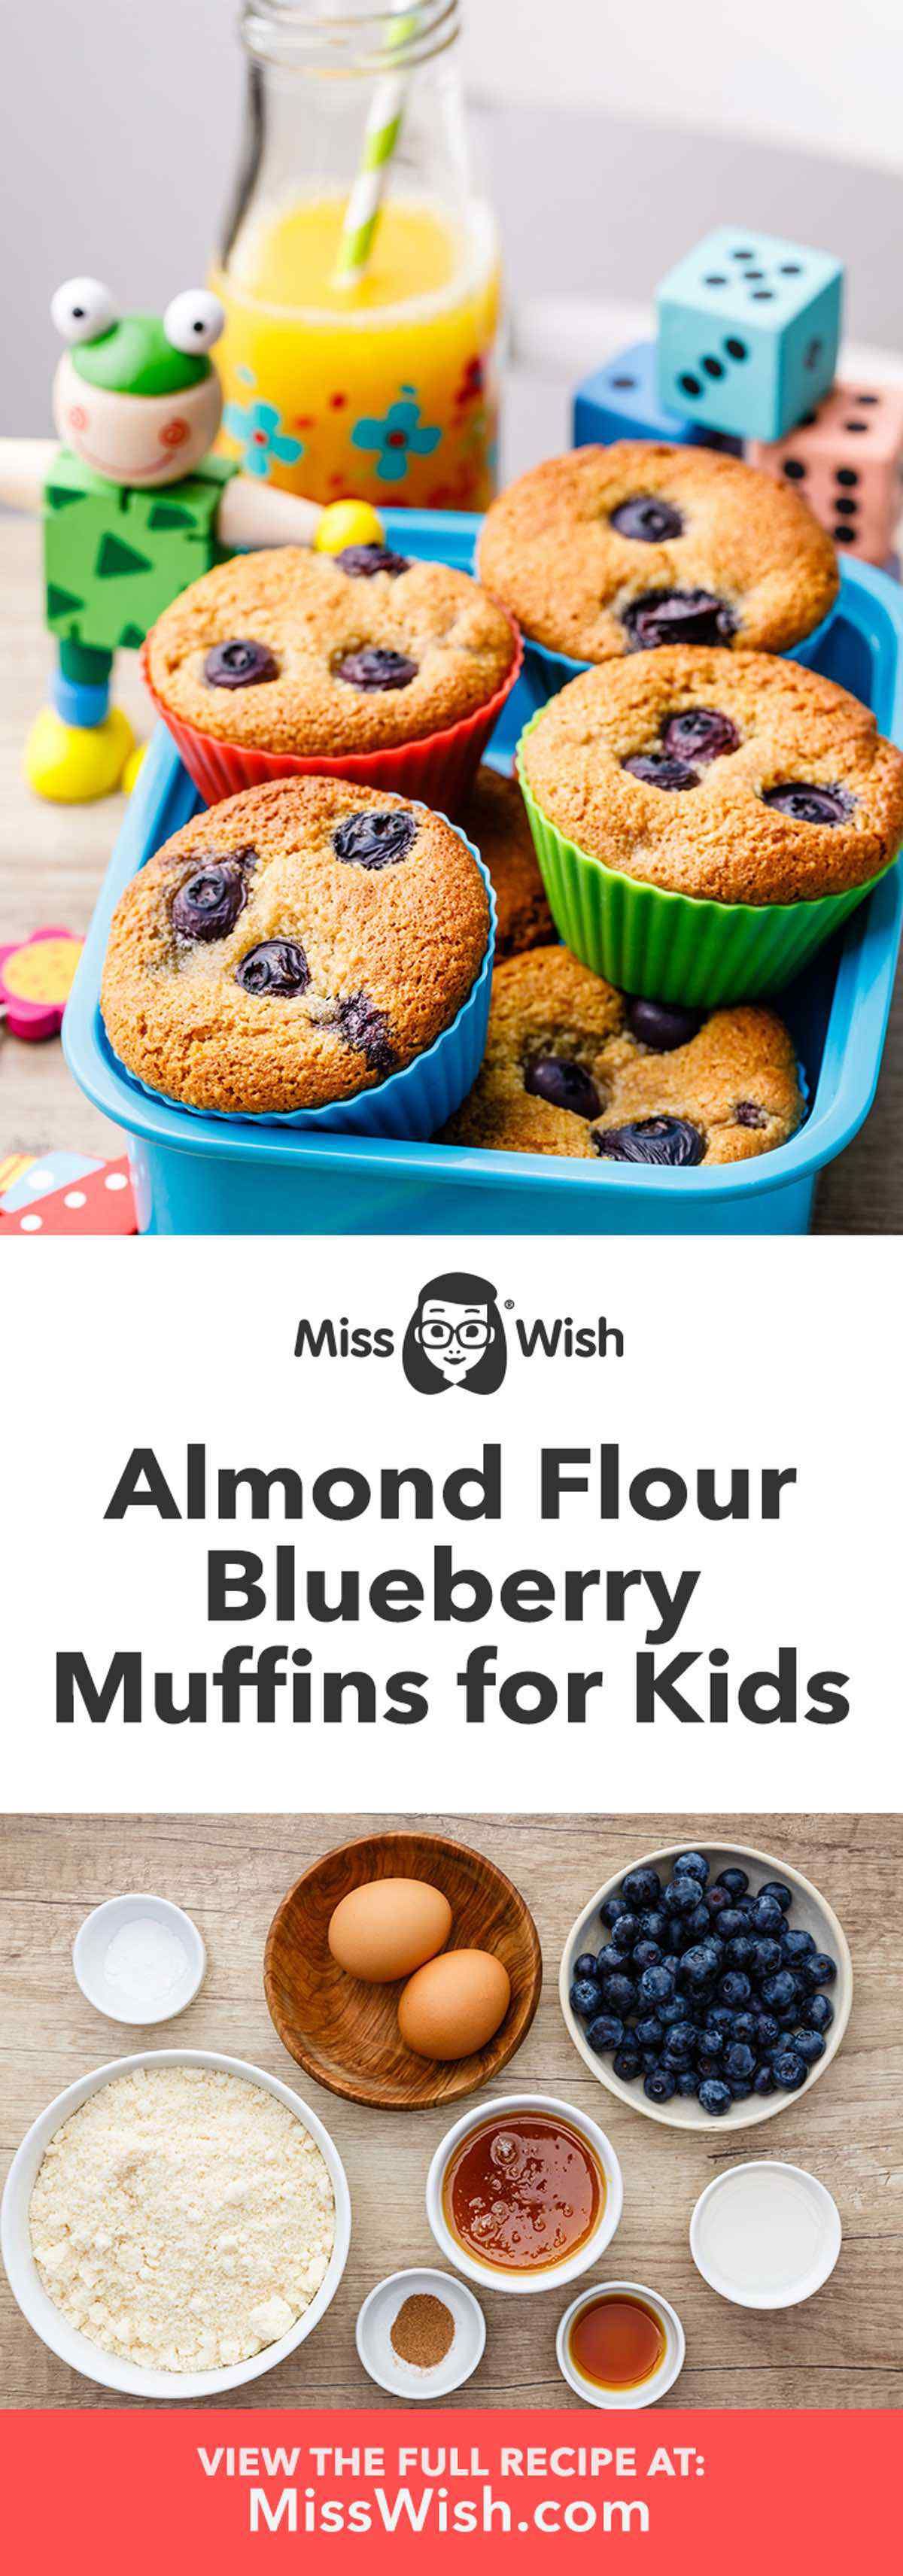 Almond Flour Paleo Blueberry Muffins for Kids